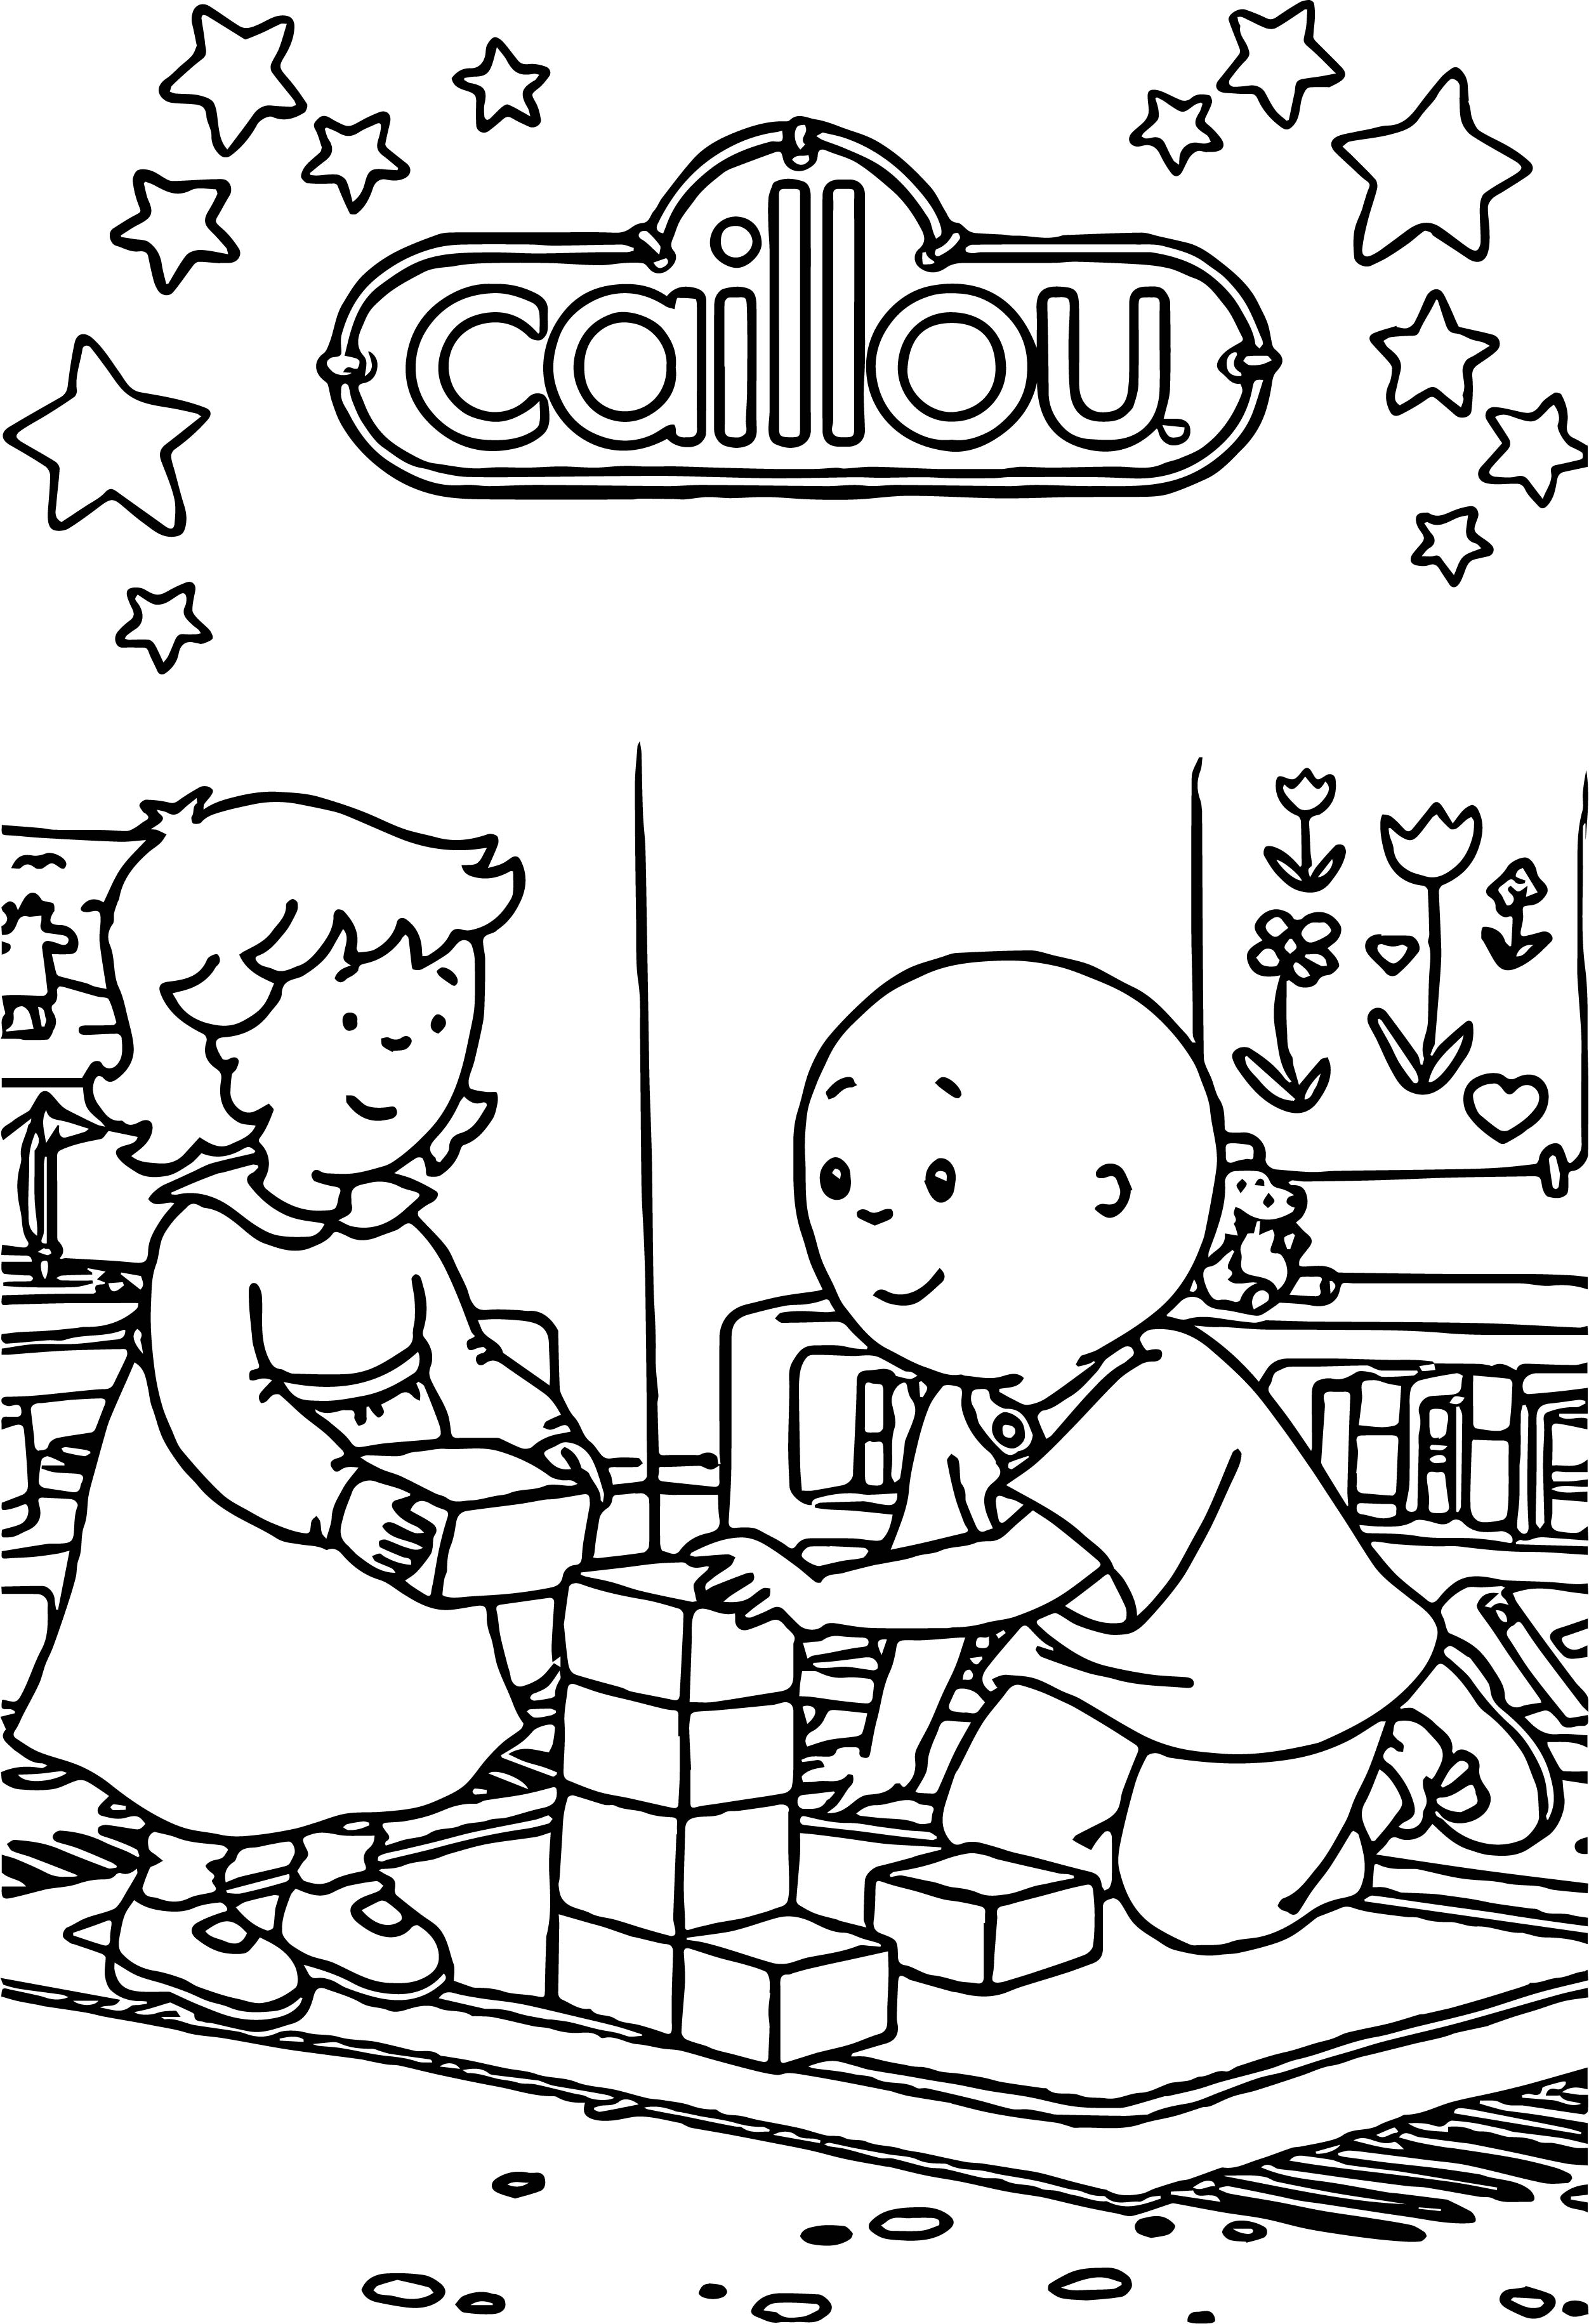 Stars Cube Game Caillou Coloring Page | Wecoloringpage